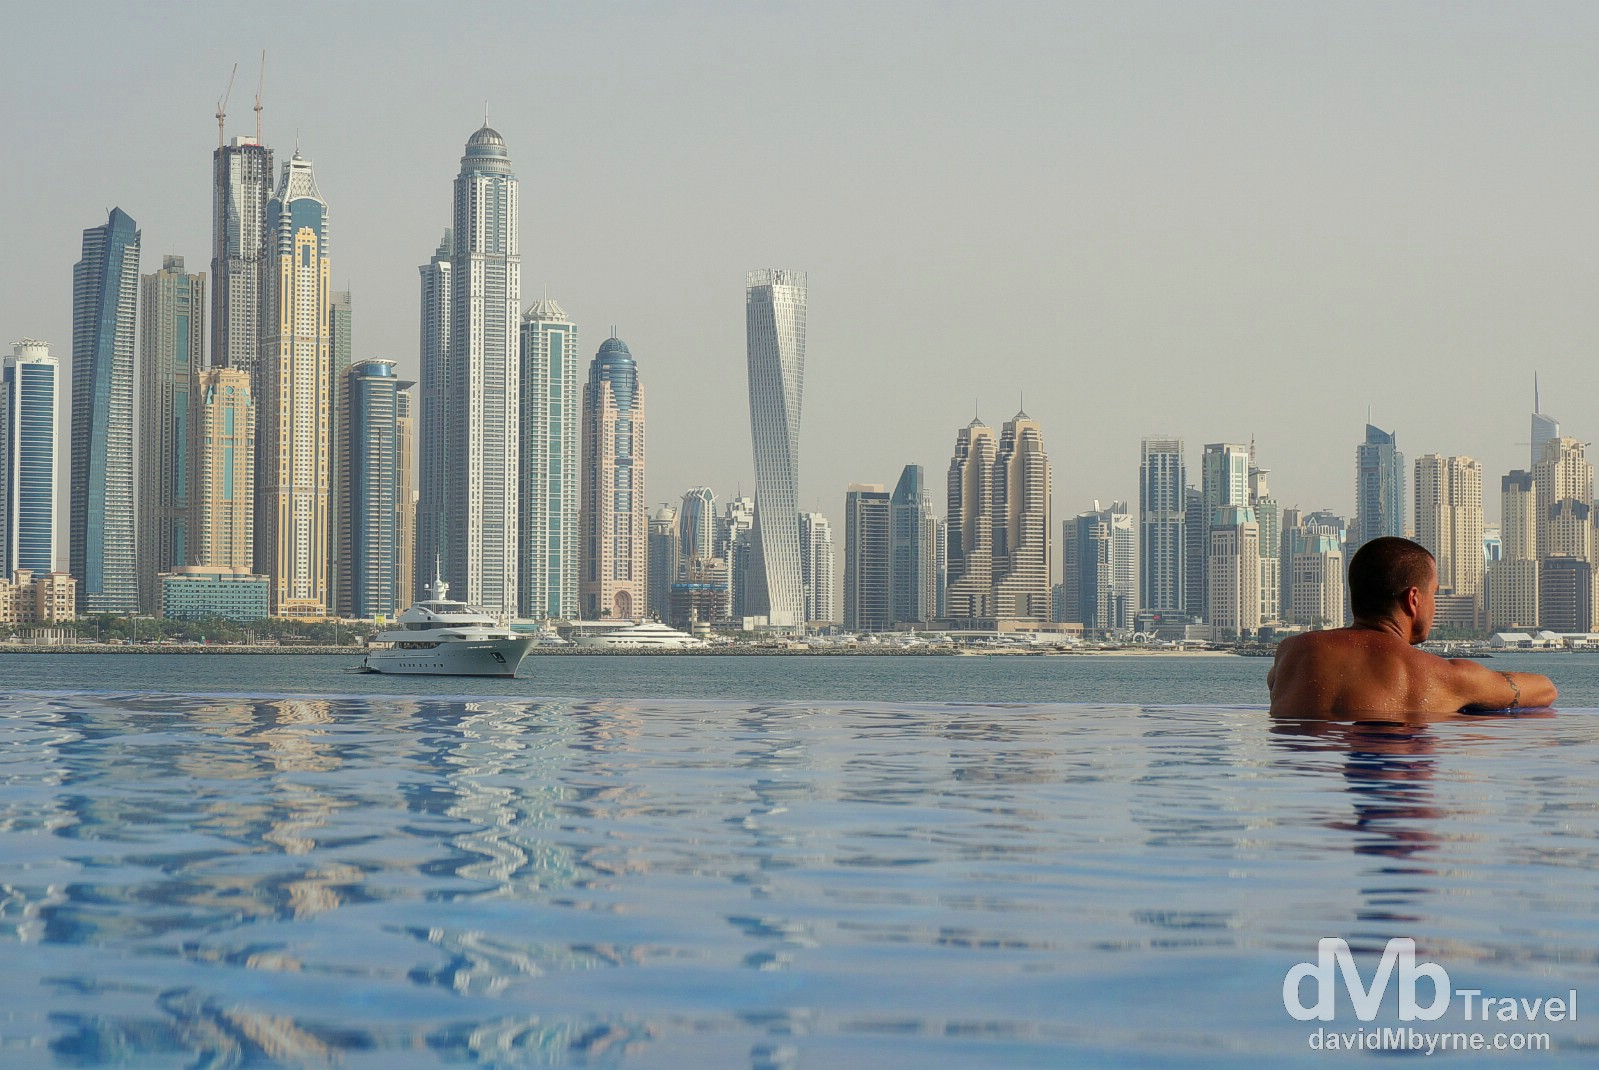 The towers of Dubai Marina as seen from the infinity pool of the Oceania Beach Club, Palm Jumeirah, Dubai, UAE. April 19th, 2014.